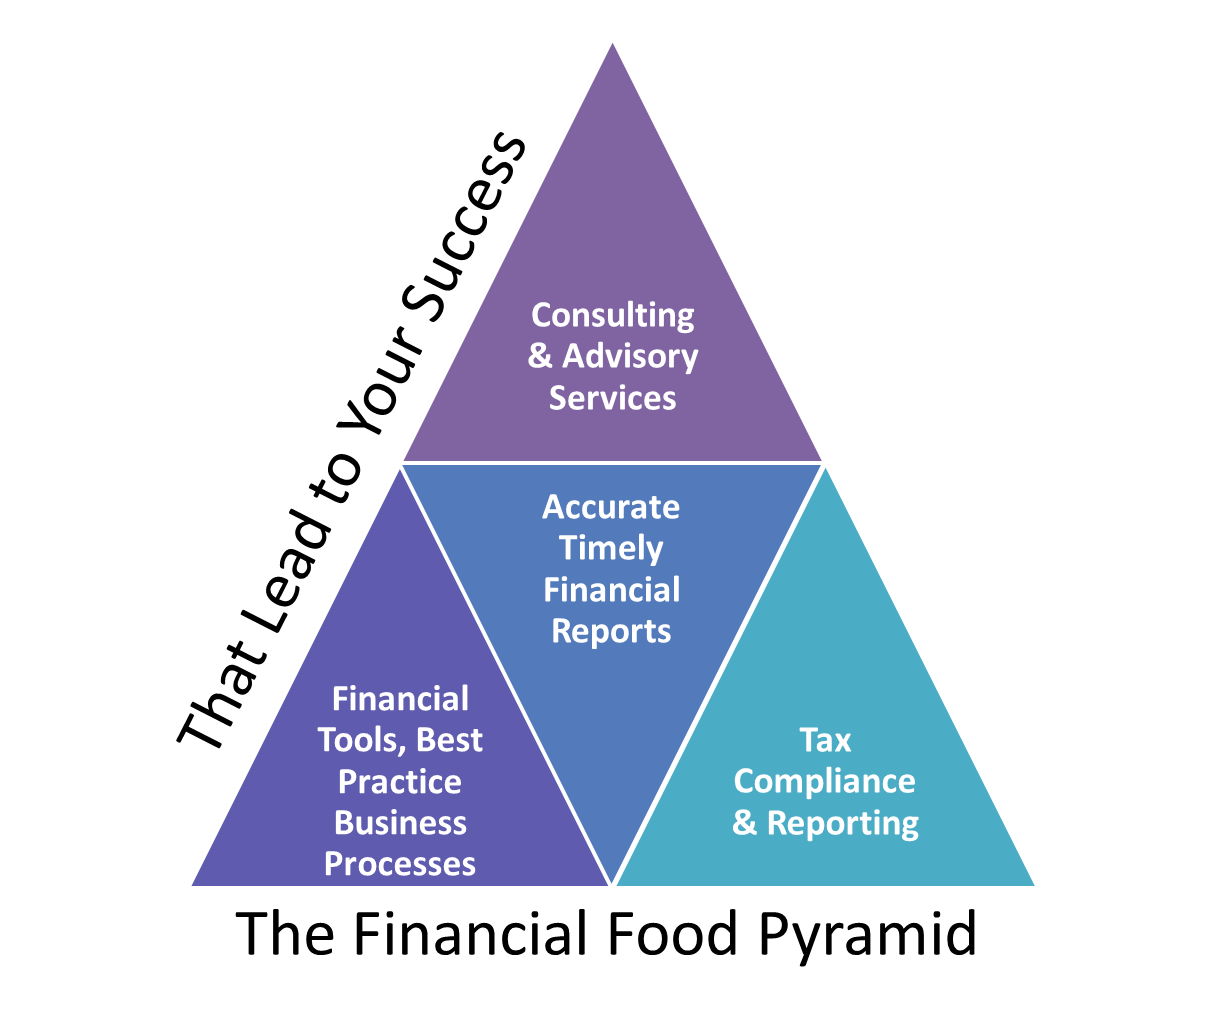 Restaurant Accounting - Financial Food Pyramid Image